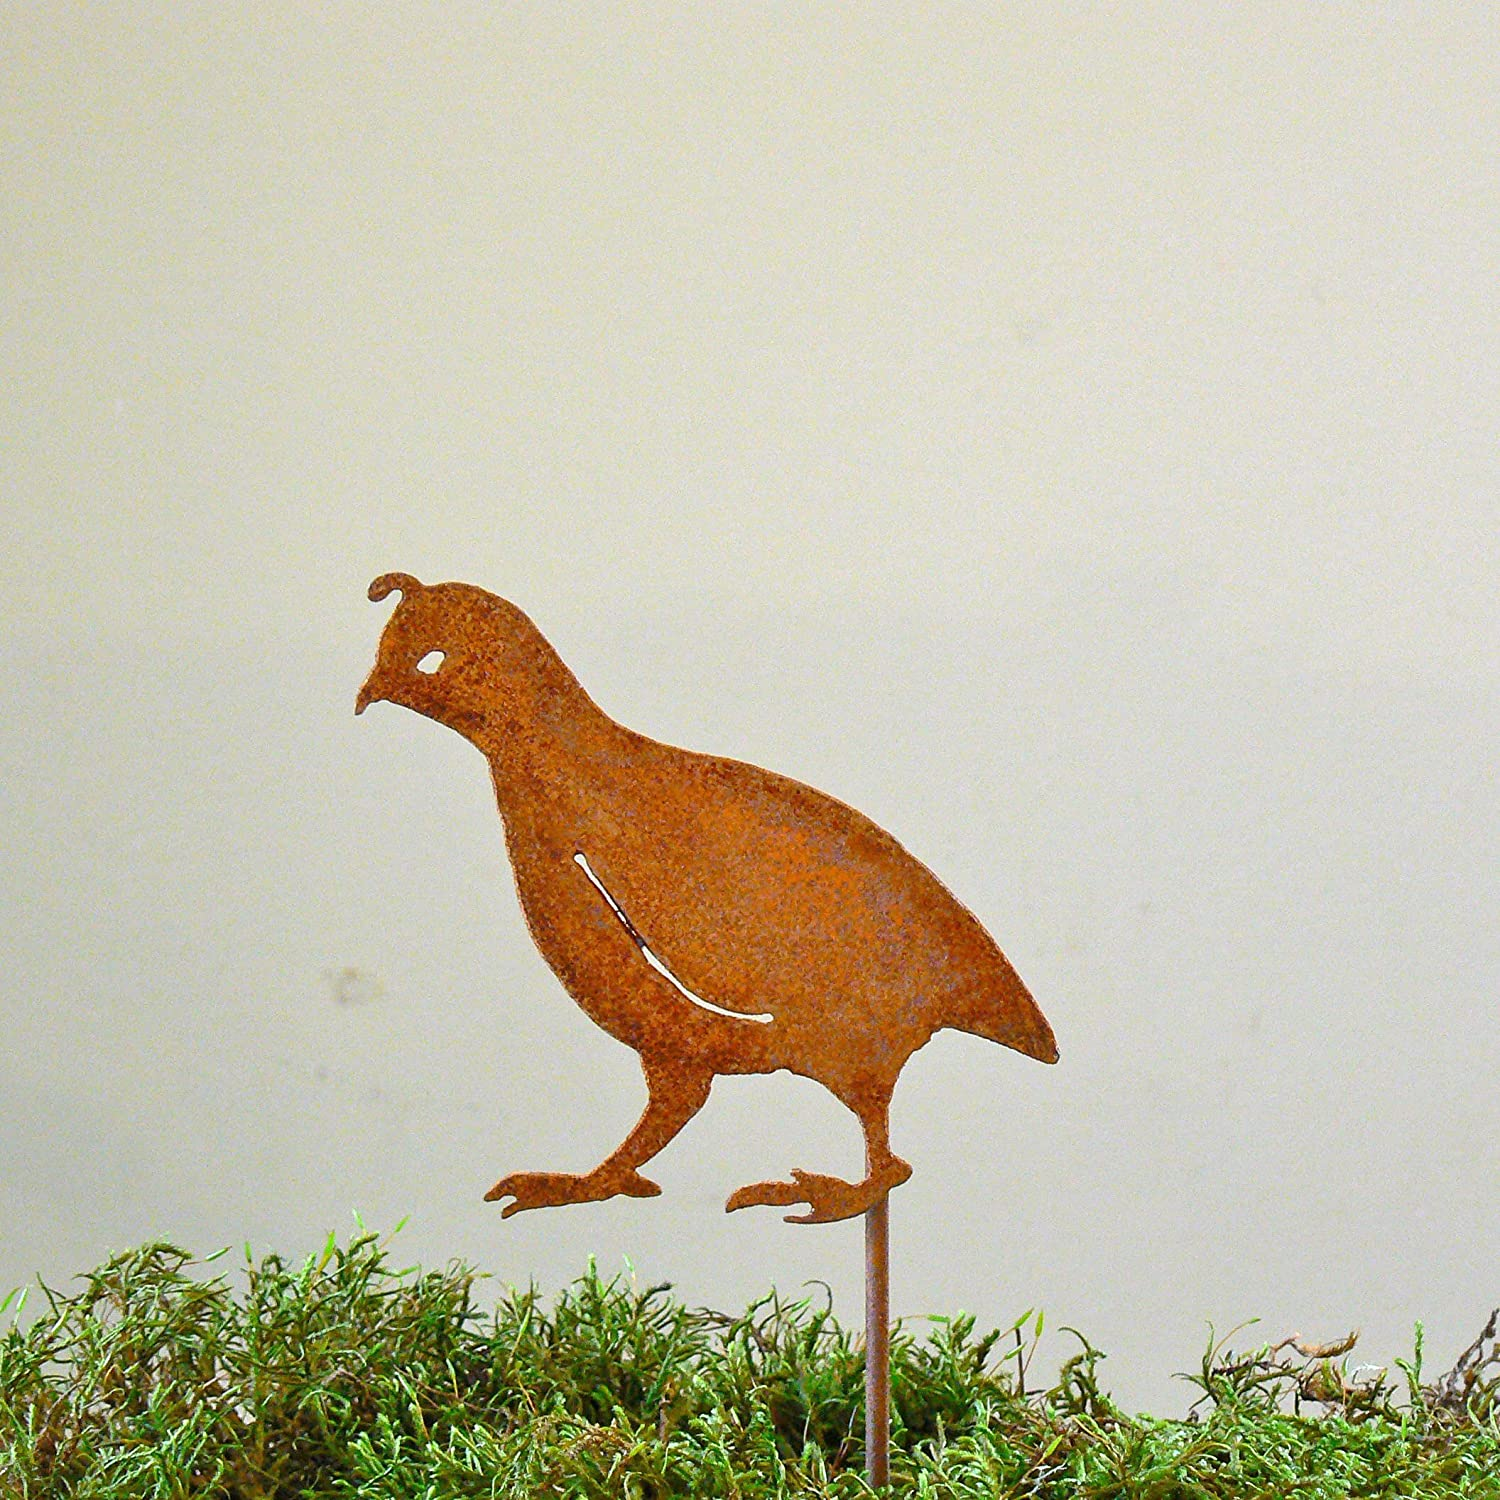 Elegant Garden Design Quail Chick with Head Up Stake, Steel Silhouette with Rusty Patina